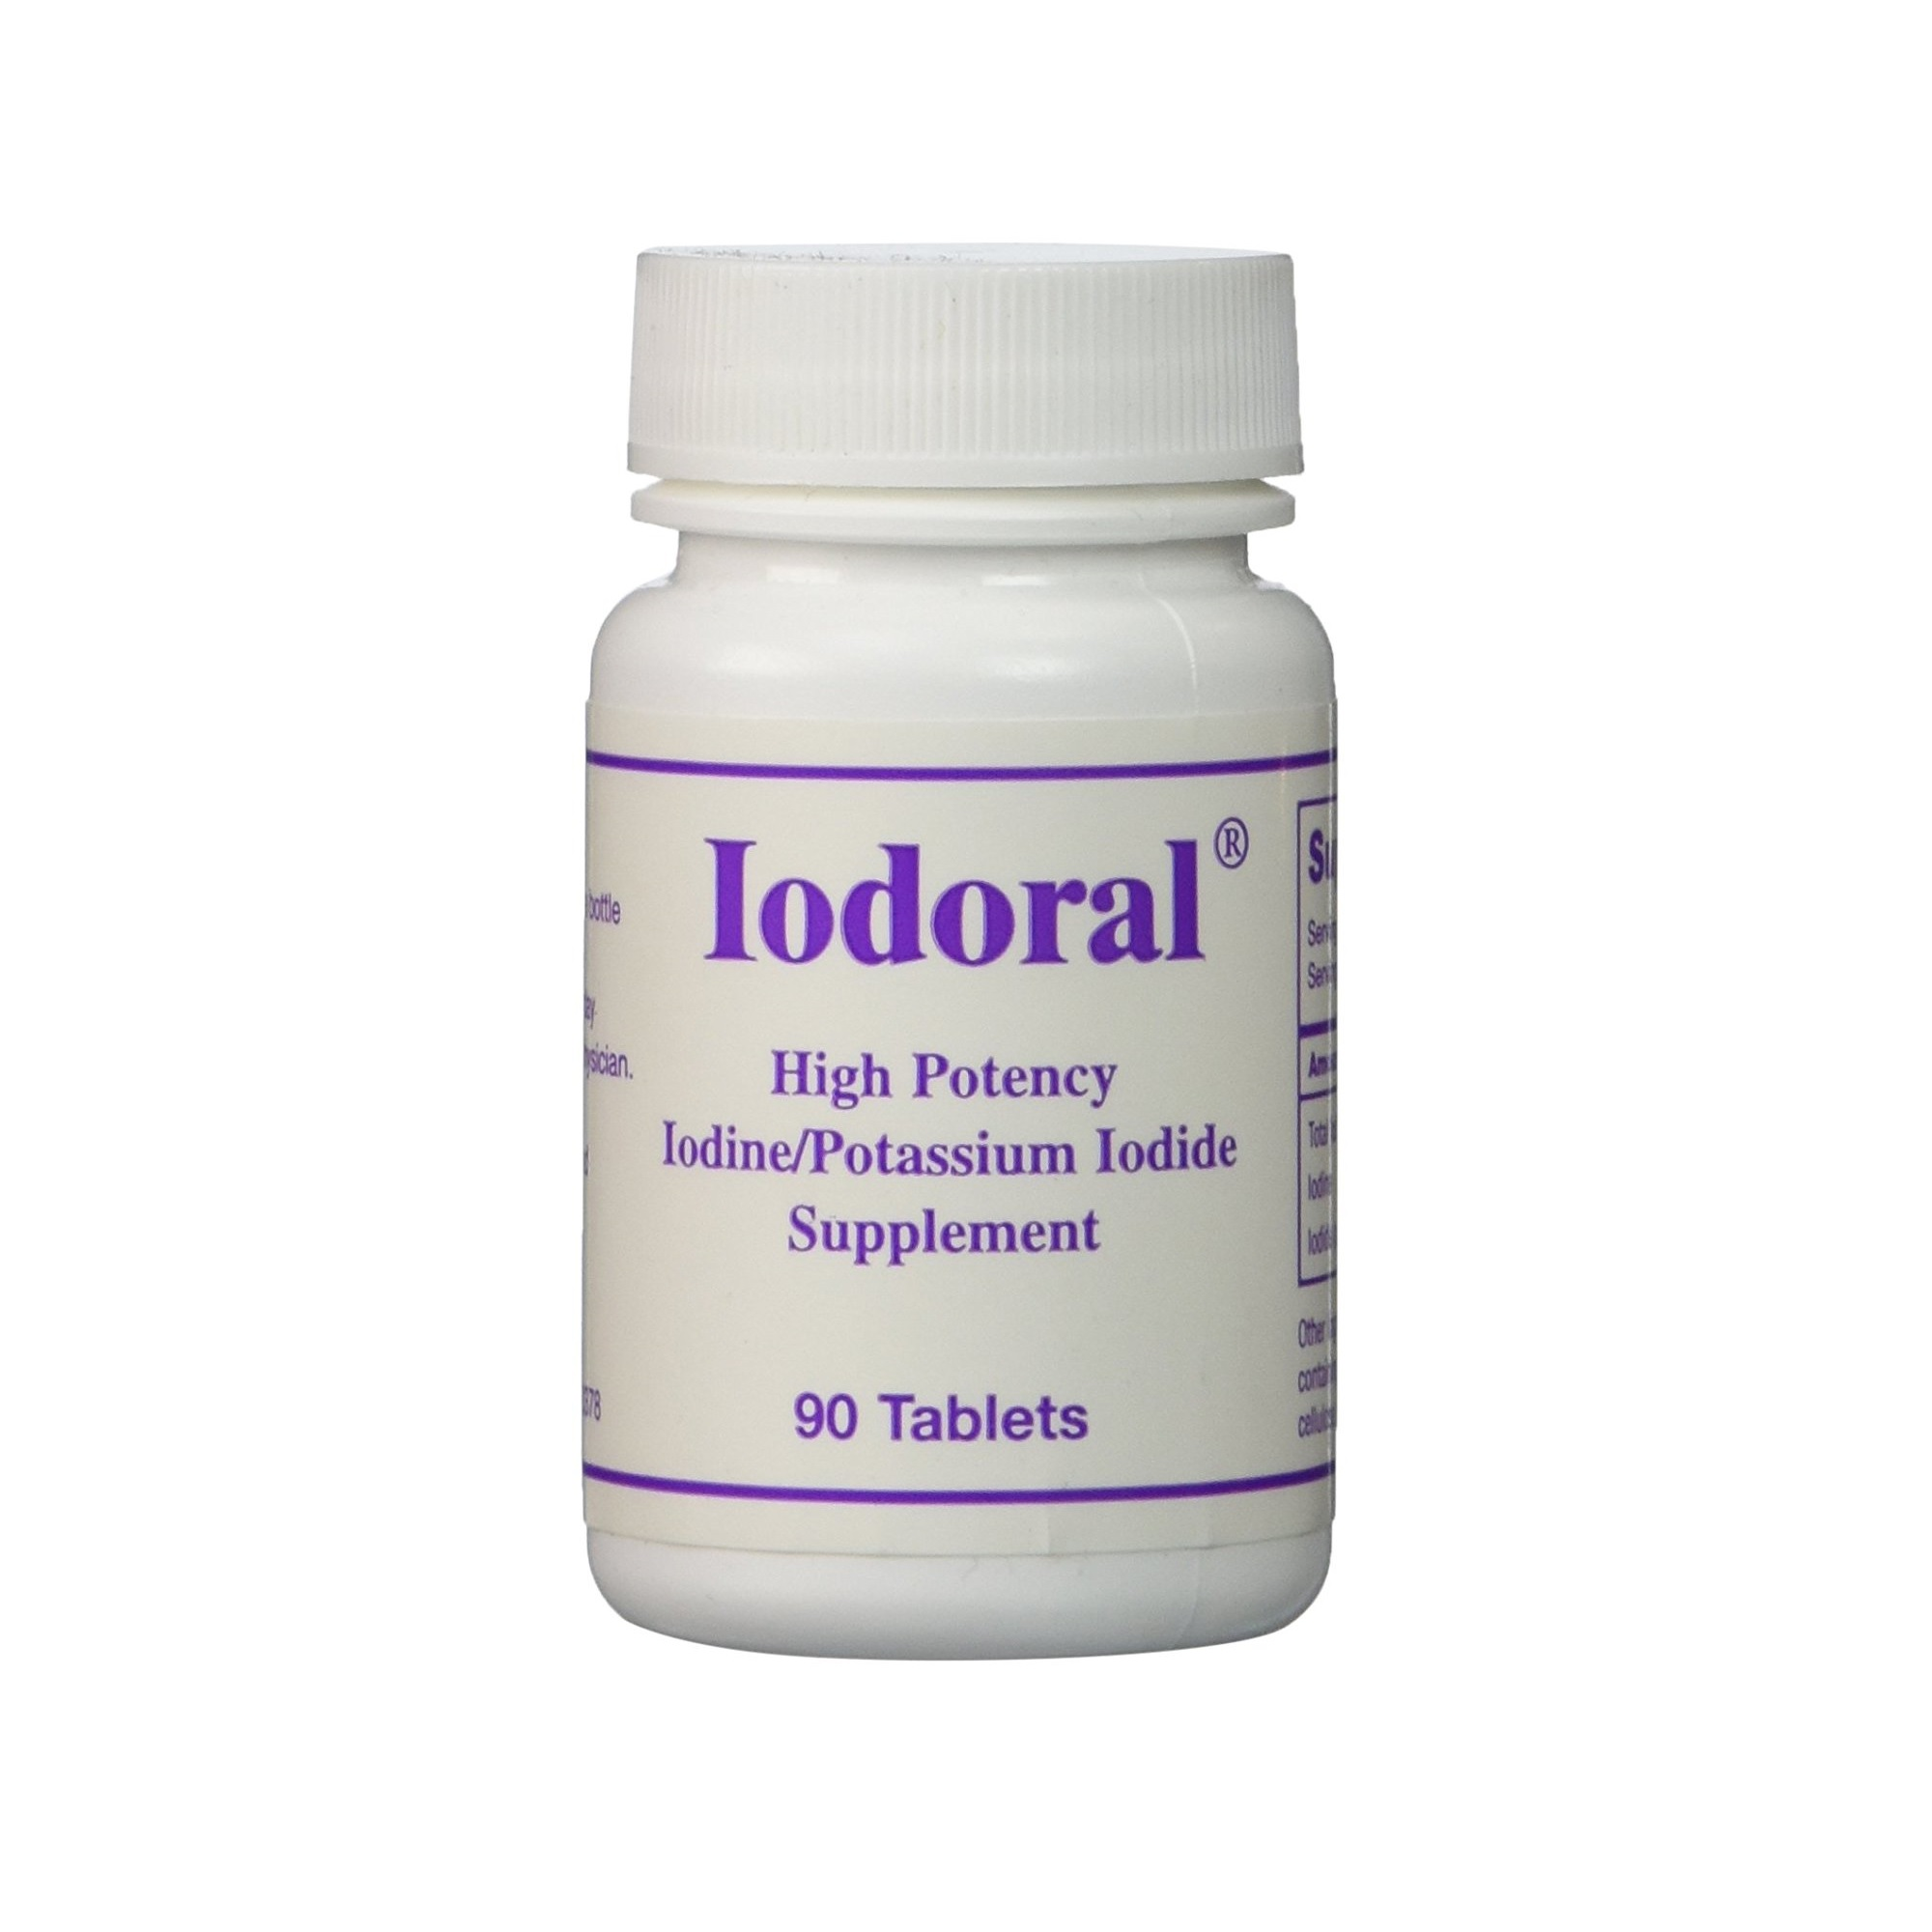 OPTIMOX Iodoral High Potency Iodine Potassium Iodide Supplement 90 Tablets by